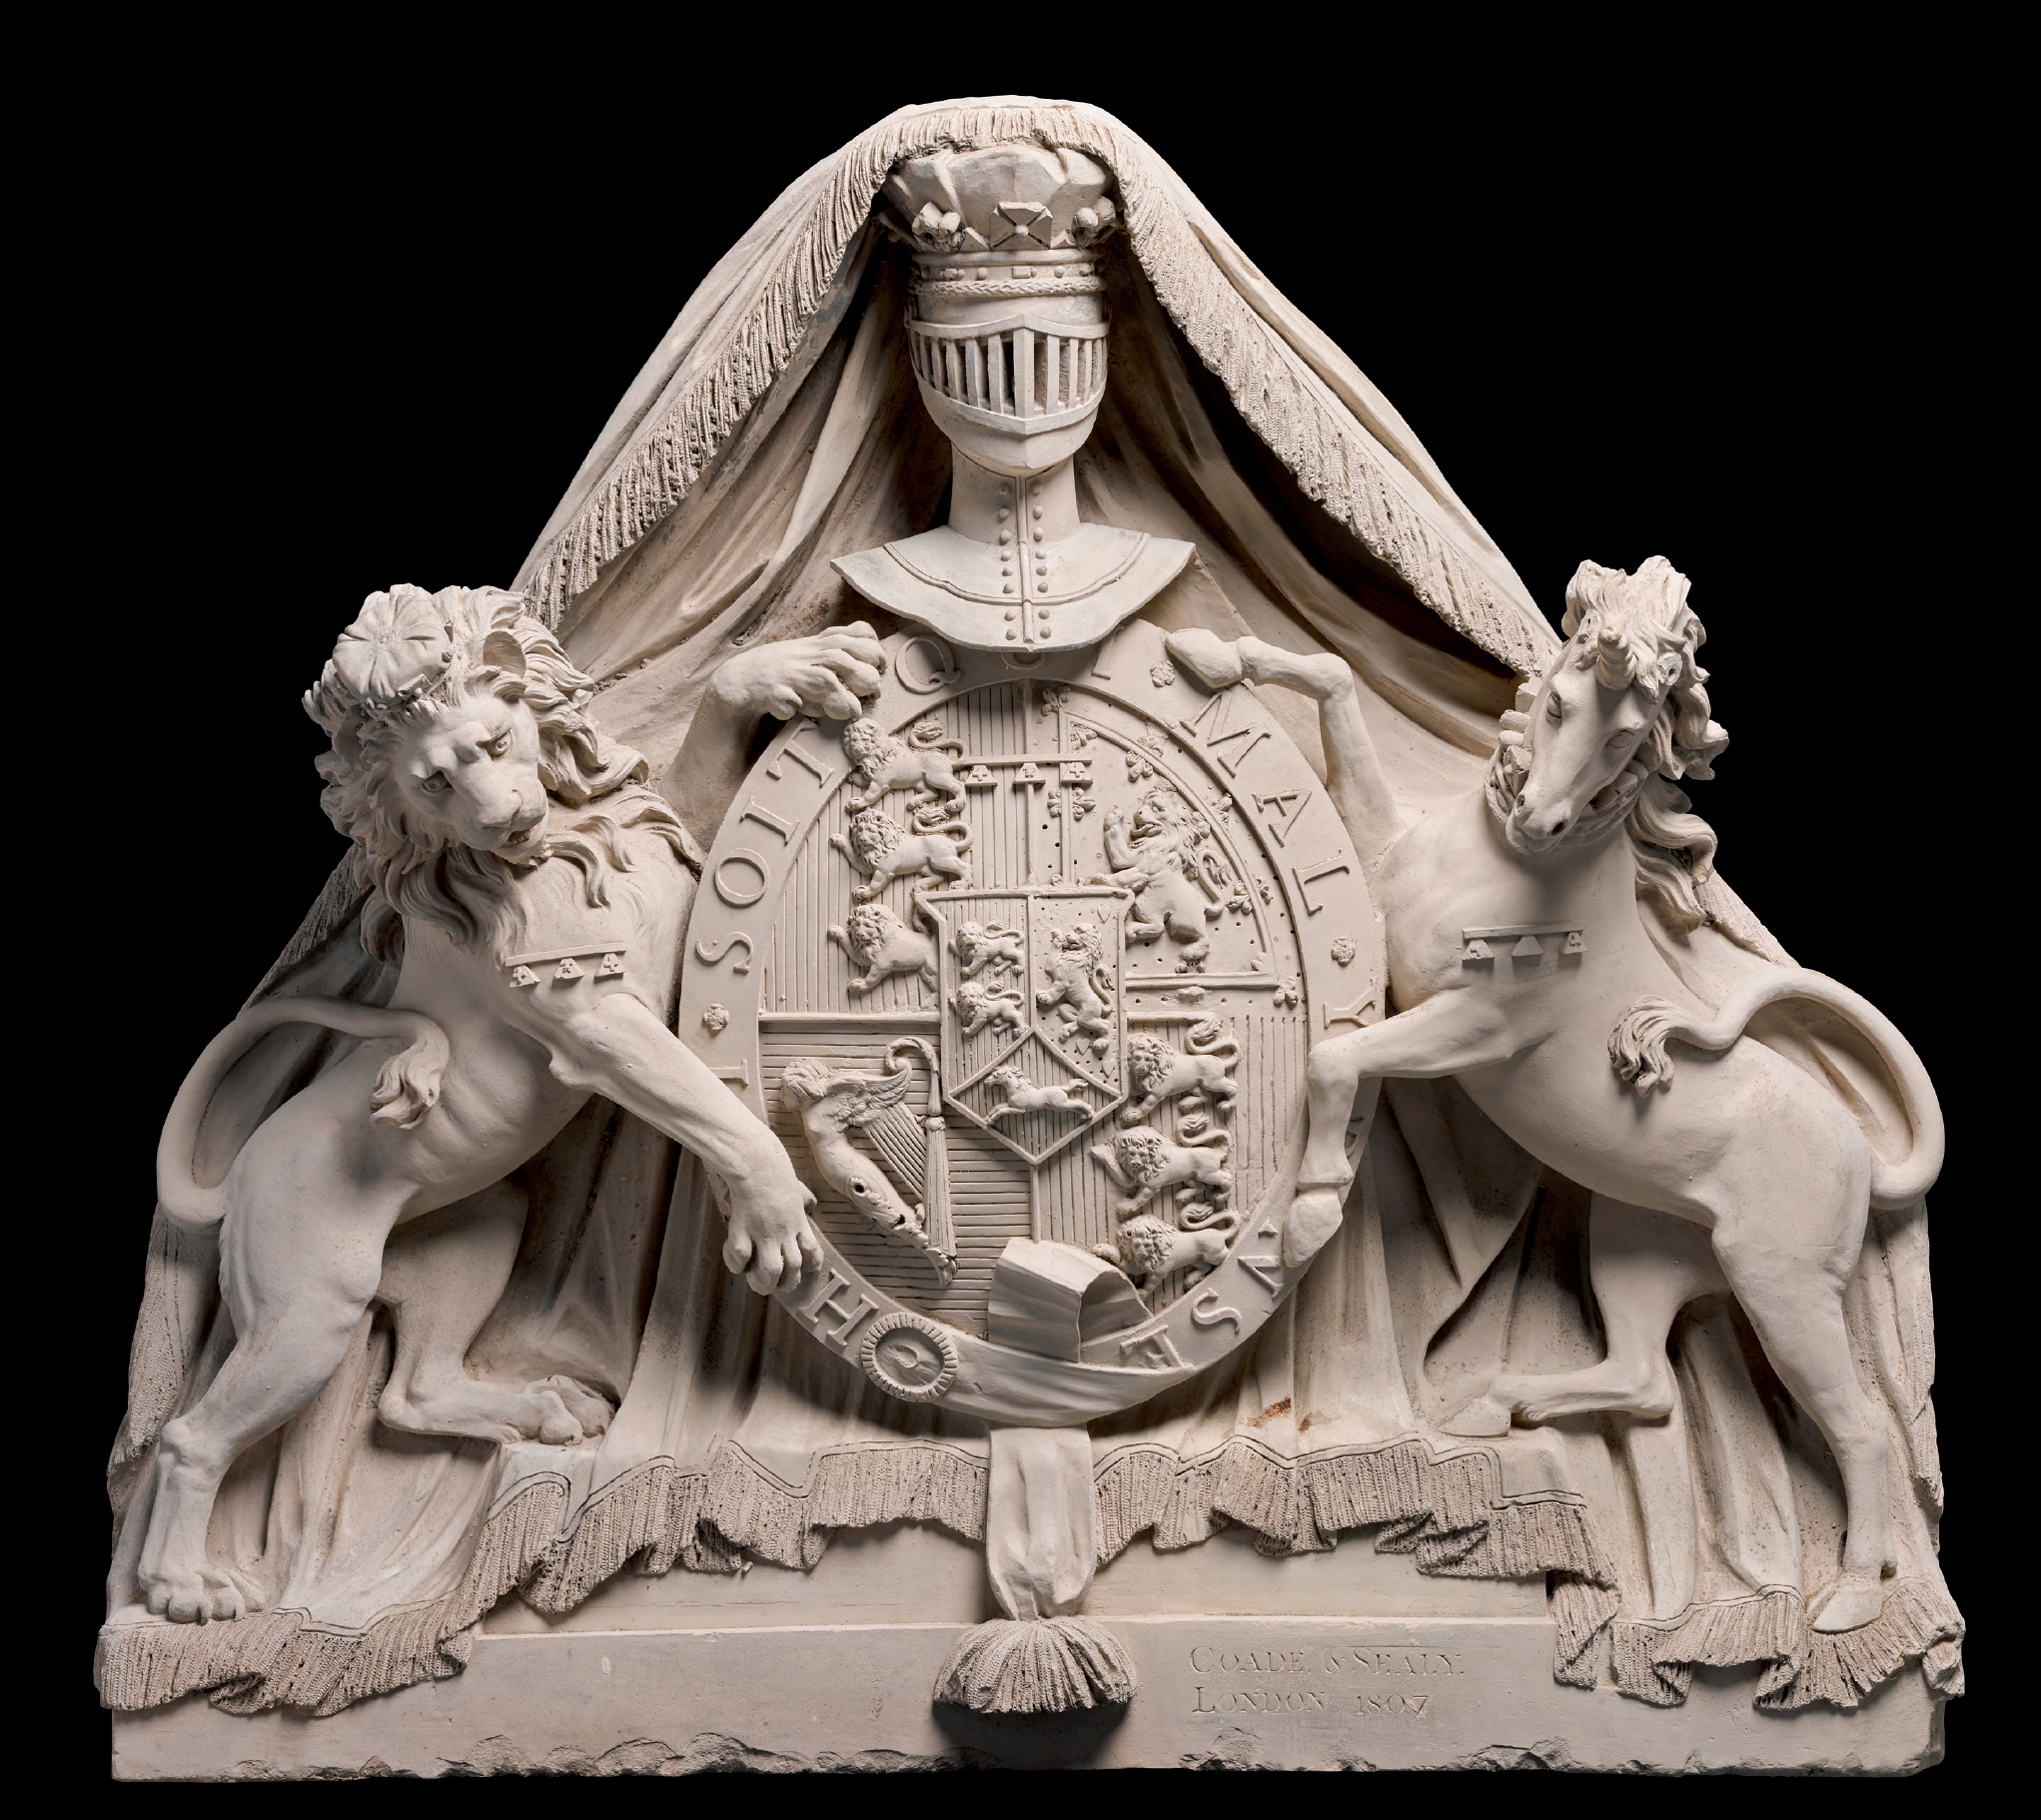 COADE'S ARTIFICIAL STONE MANUFACTORY (FL. 1769-1840), BRITISH, LONDON, 1807   PEDIMENT RELIEF WITH THE ROYAL ARMS OF GEORGE III